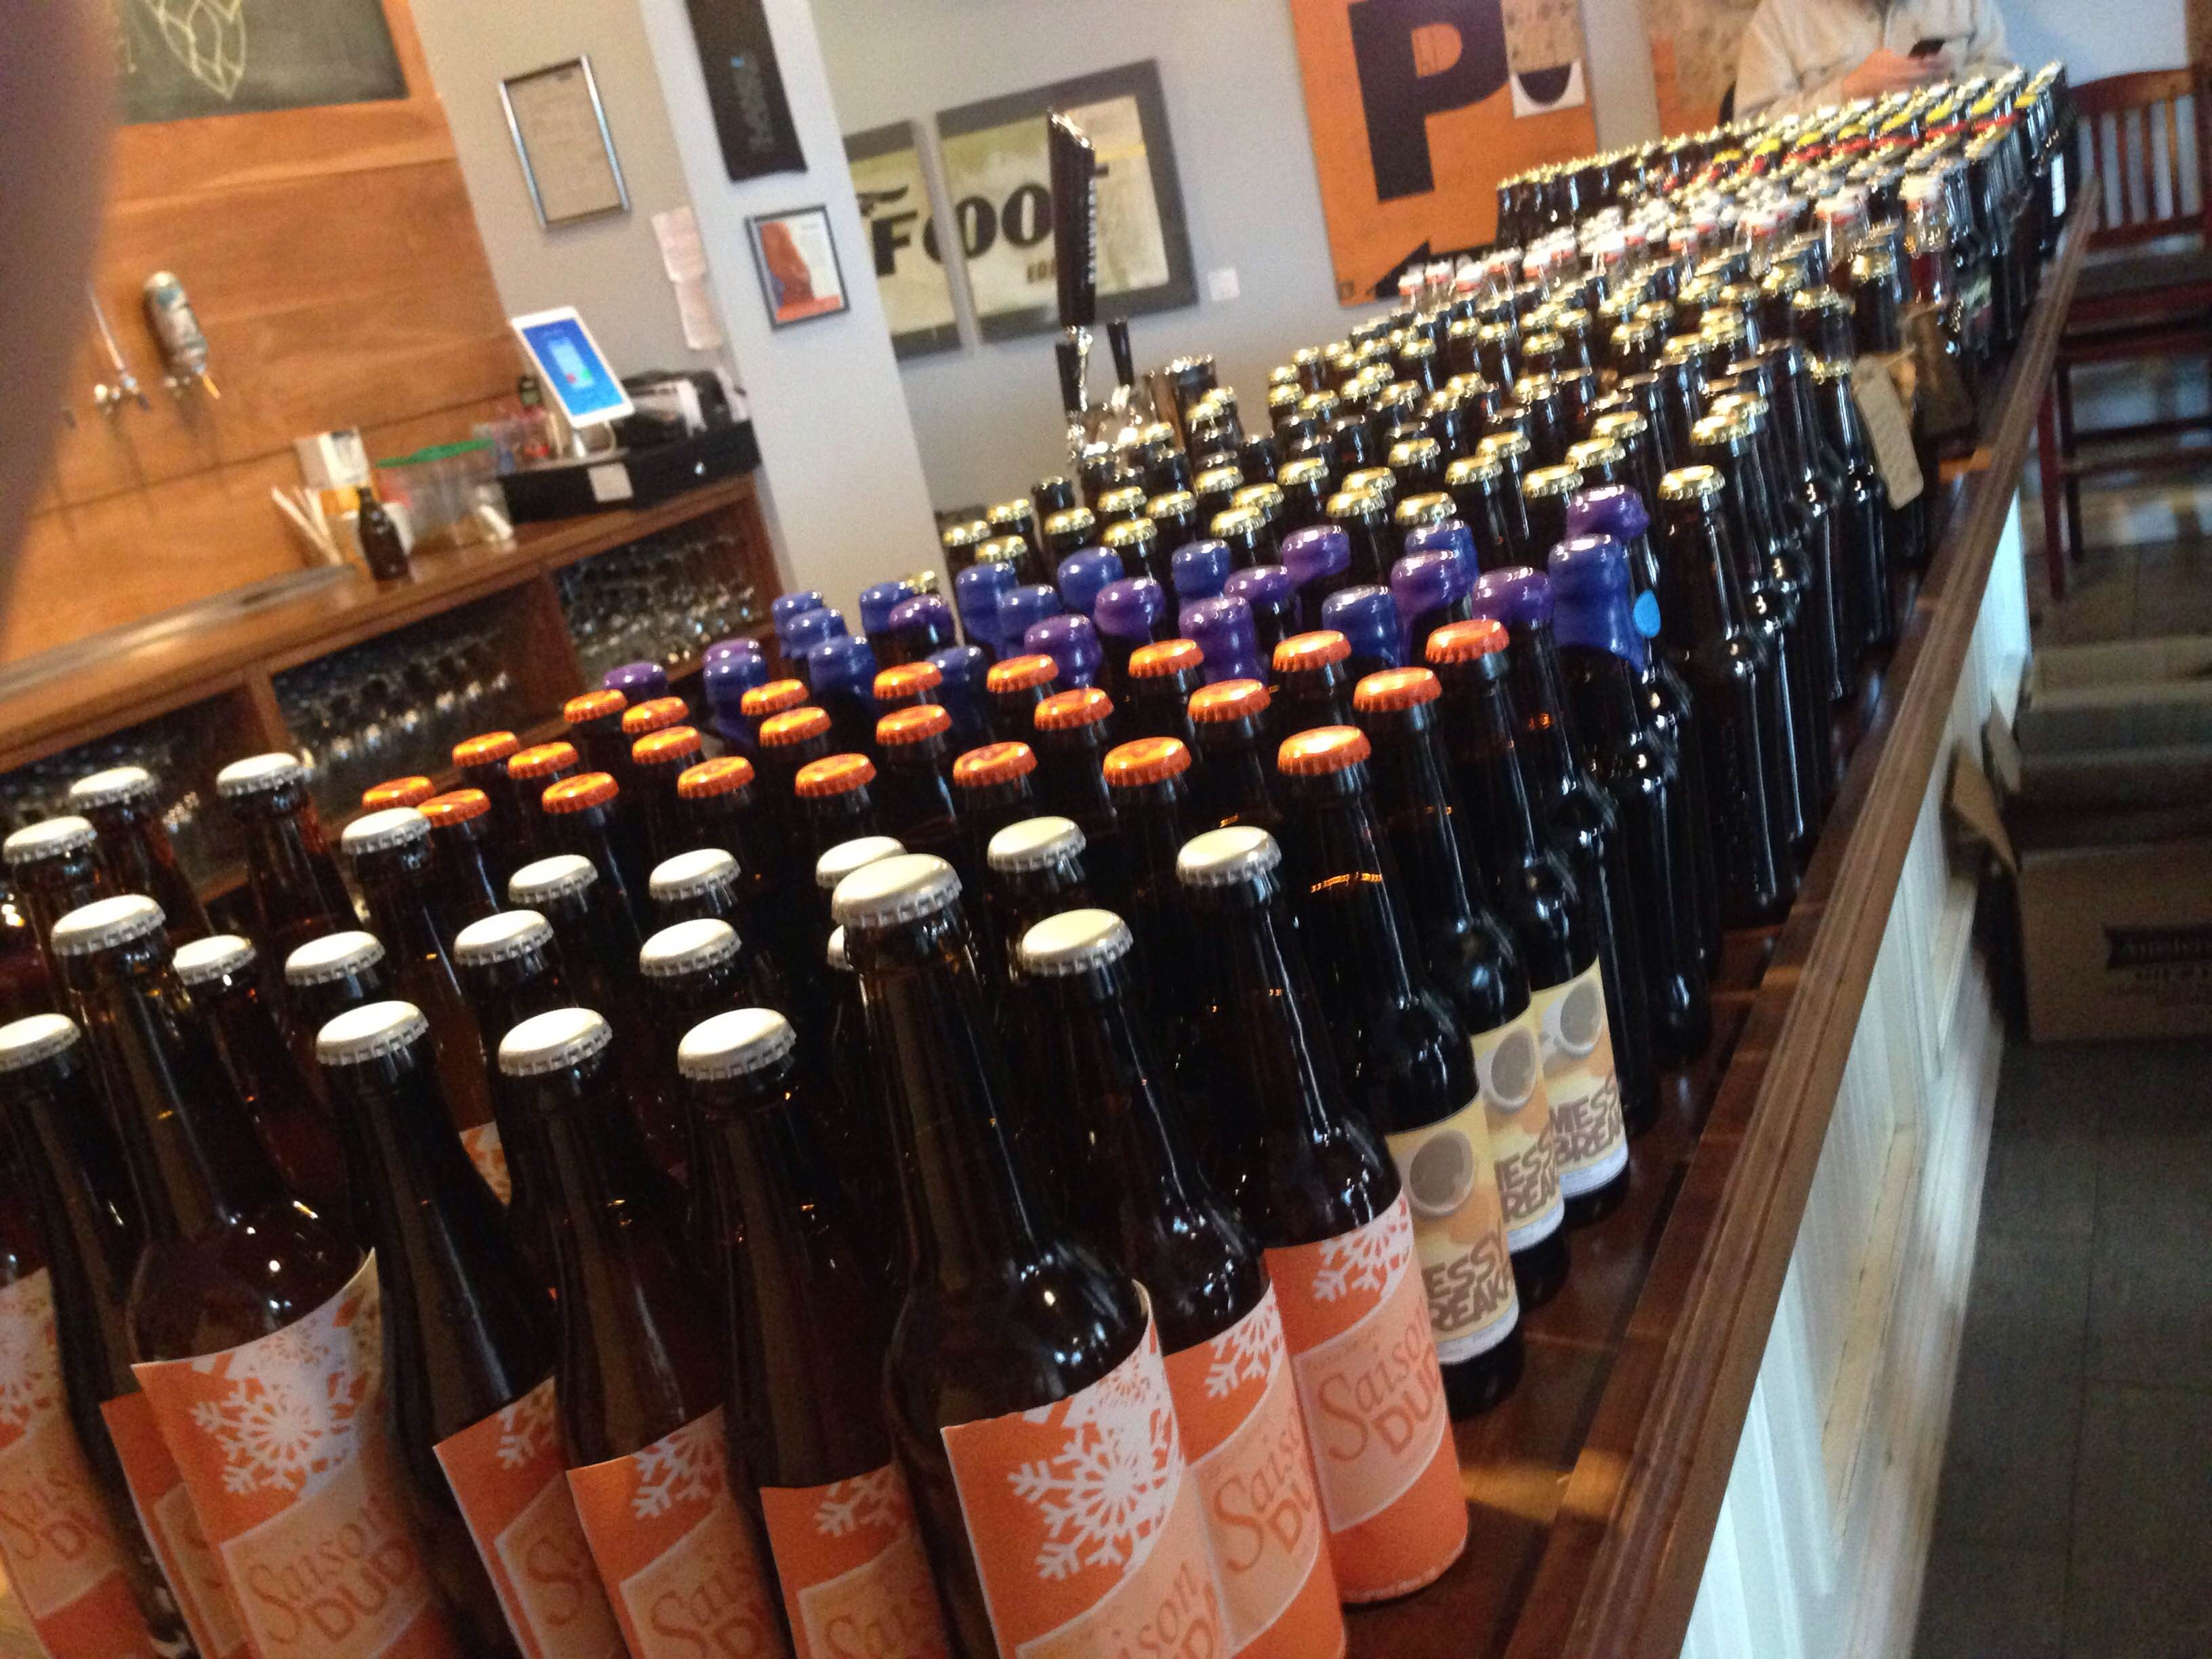 Bottles all lined up for exchange at the west side exchange